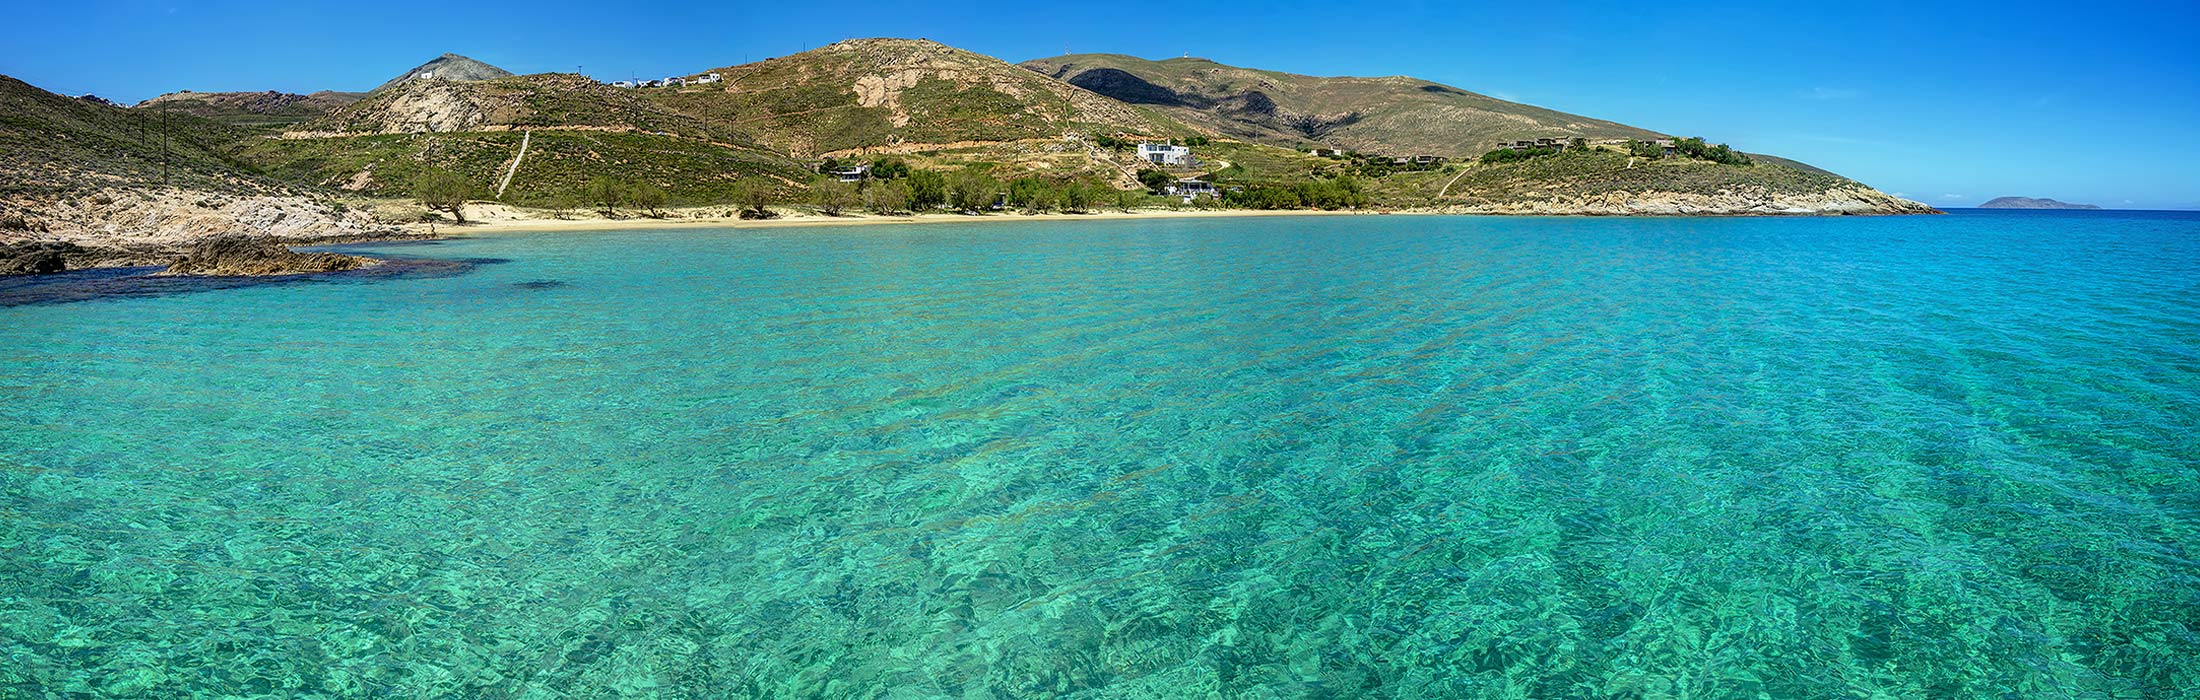 top yacht charter destinations mediterranean greece cyclades serifos main slider 1